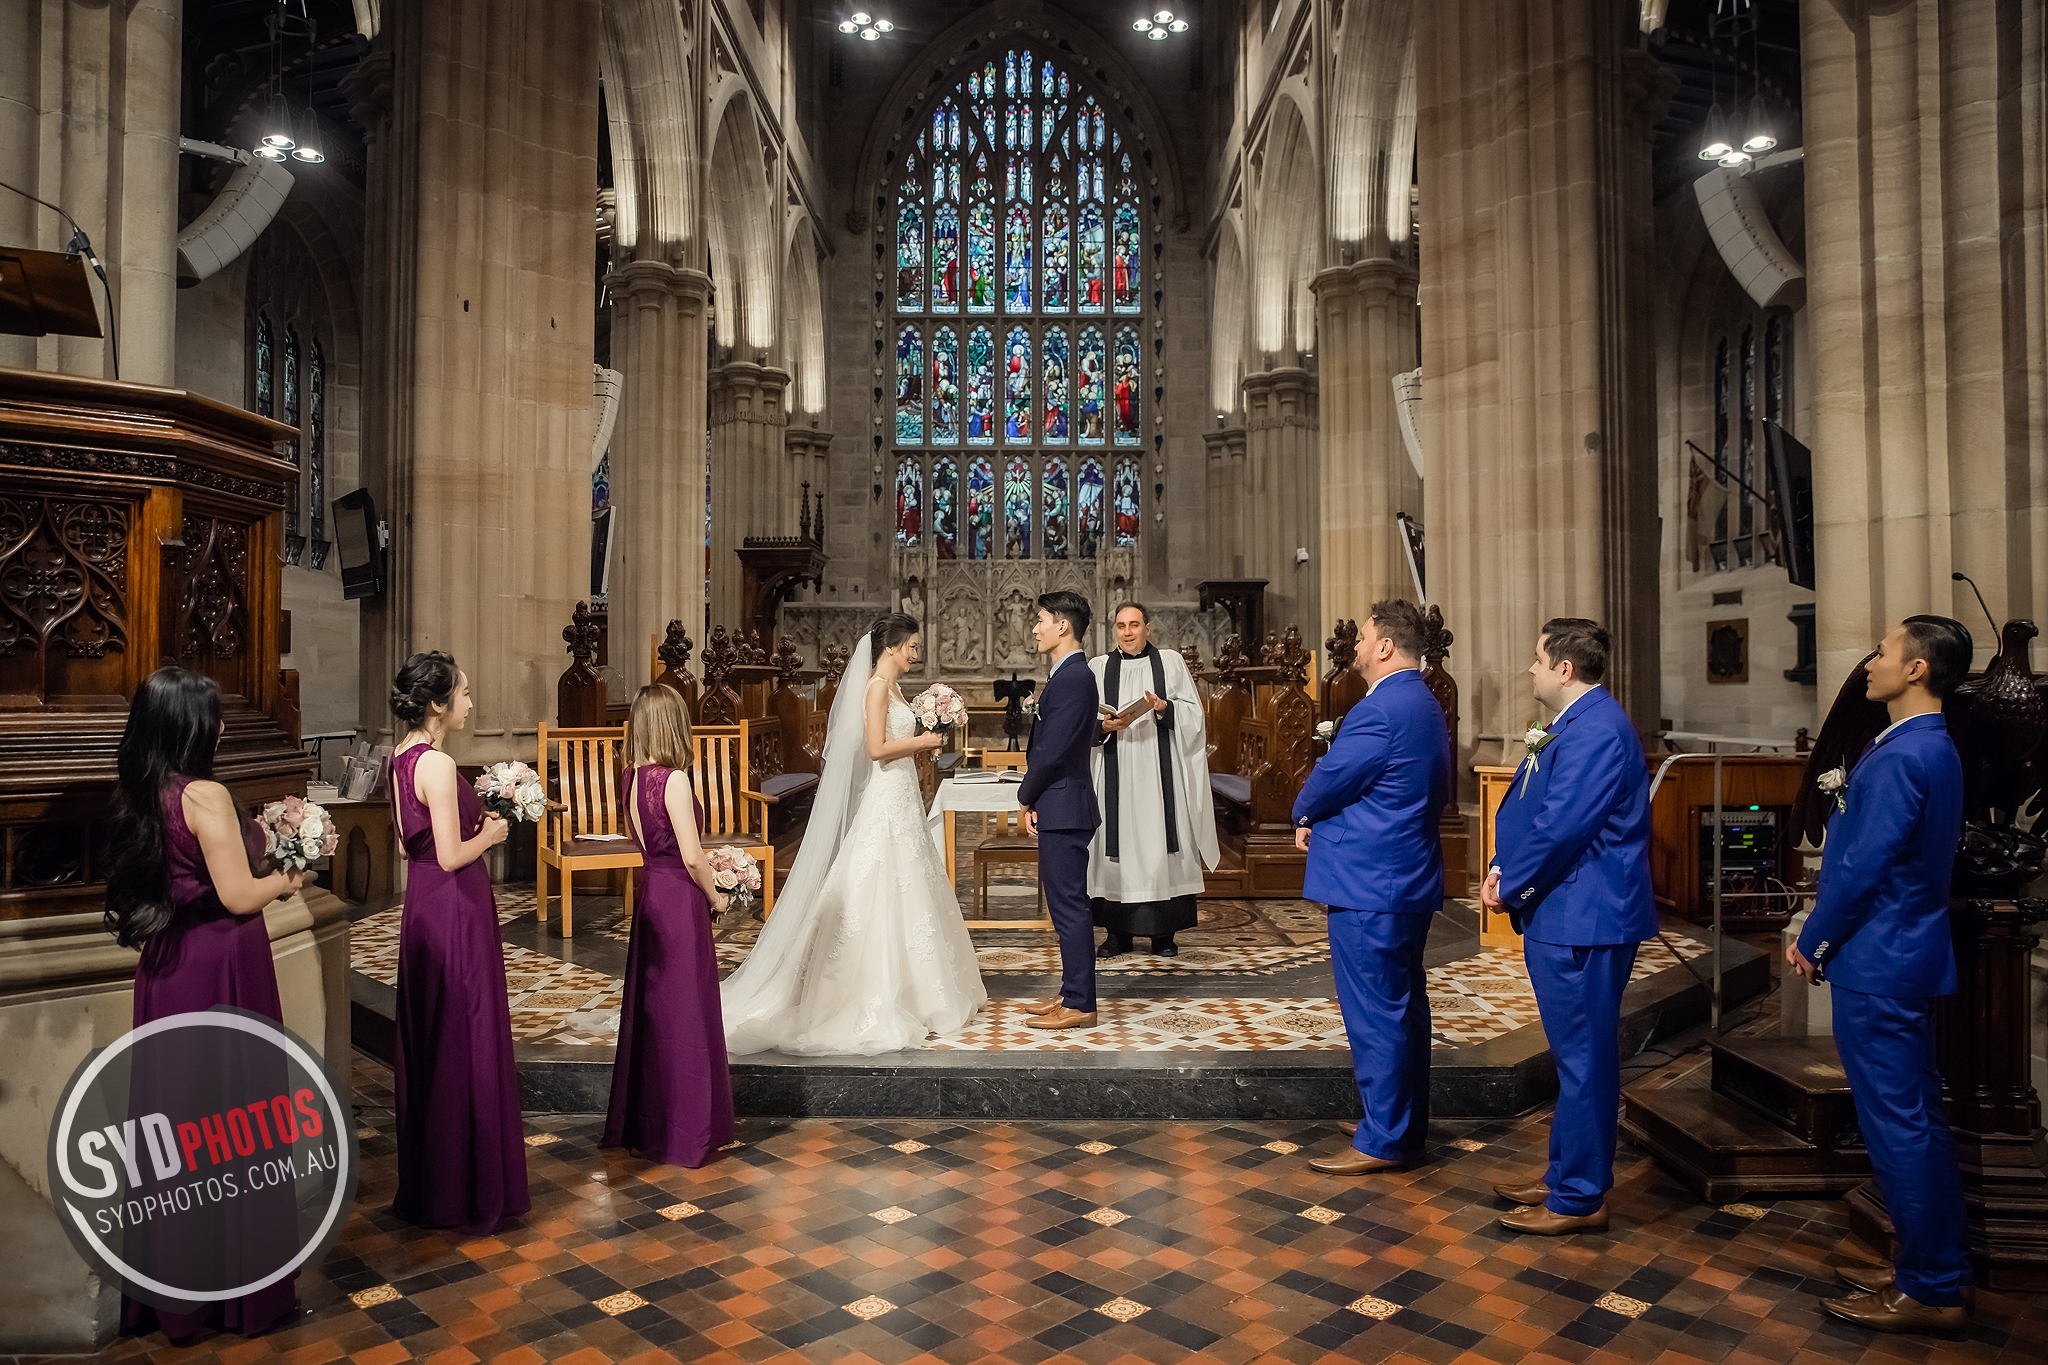 ID-876363-20180512-551.jpg, By Photographer Sydphotos.wedding, Created on 11 Sep 2018, SYDPHOTOS Photography all rights reserved.